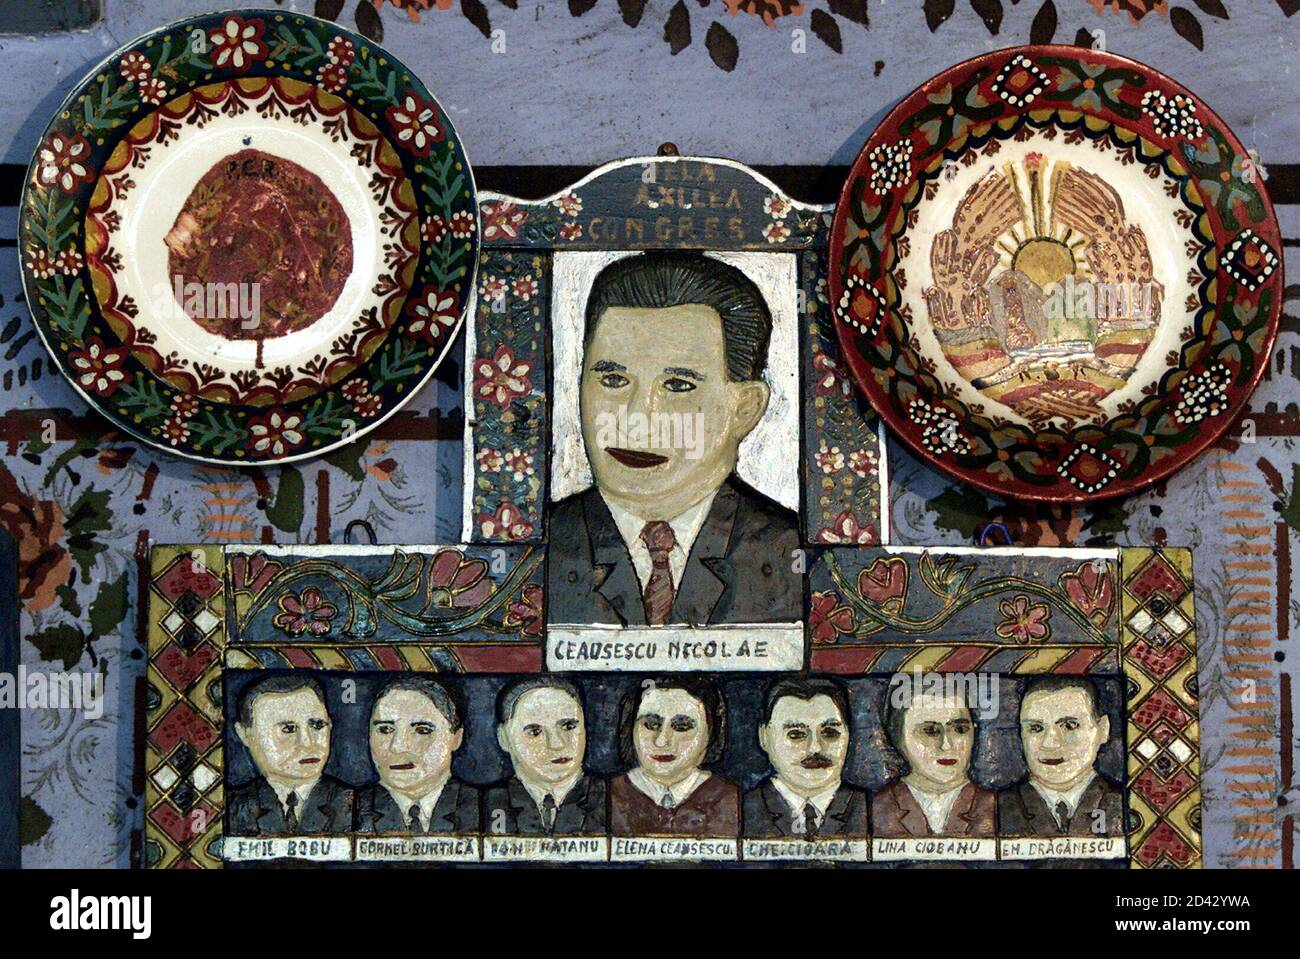 -PHOTO TAKEN 03JUL04- A carved wood panel featuring Stalinist Dictator Nicolae Ceausescu and communist central committee members is exhibited in the memorial house of Stan Ion Patras - the founder of the Merry Cemetery of Sapanta, [700km northwest of Bucharest], in this July 3, 2004 file picture. Bursting with colour, life and history, hundreds of brilliantly decorated wooden crosses have marked the graves of villagers since an imaginative local wood carver started this unique tradition in the 1930s. Stock Photo